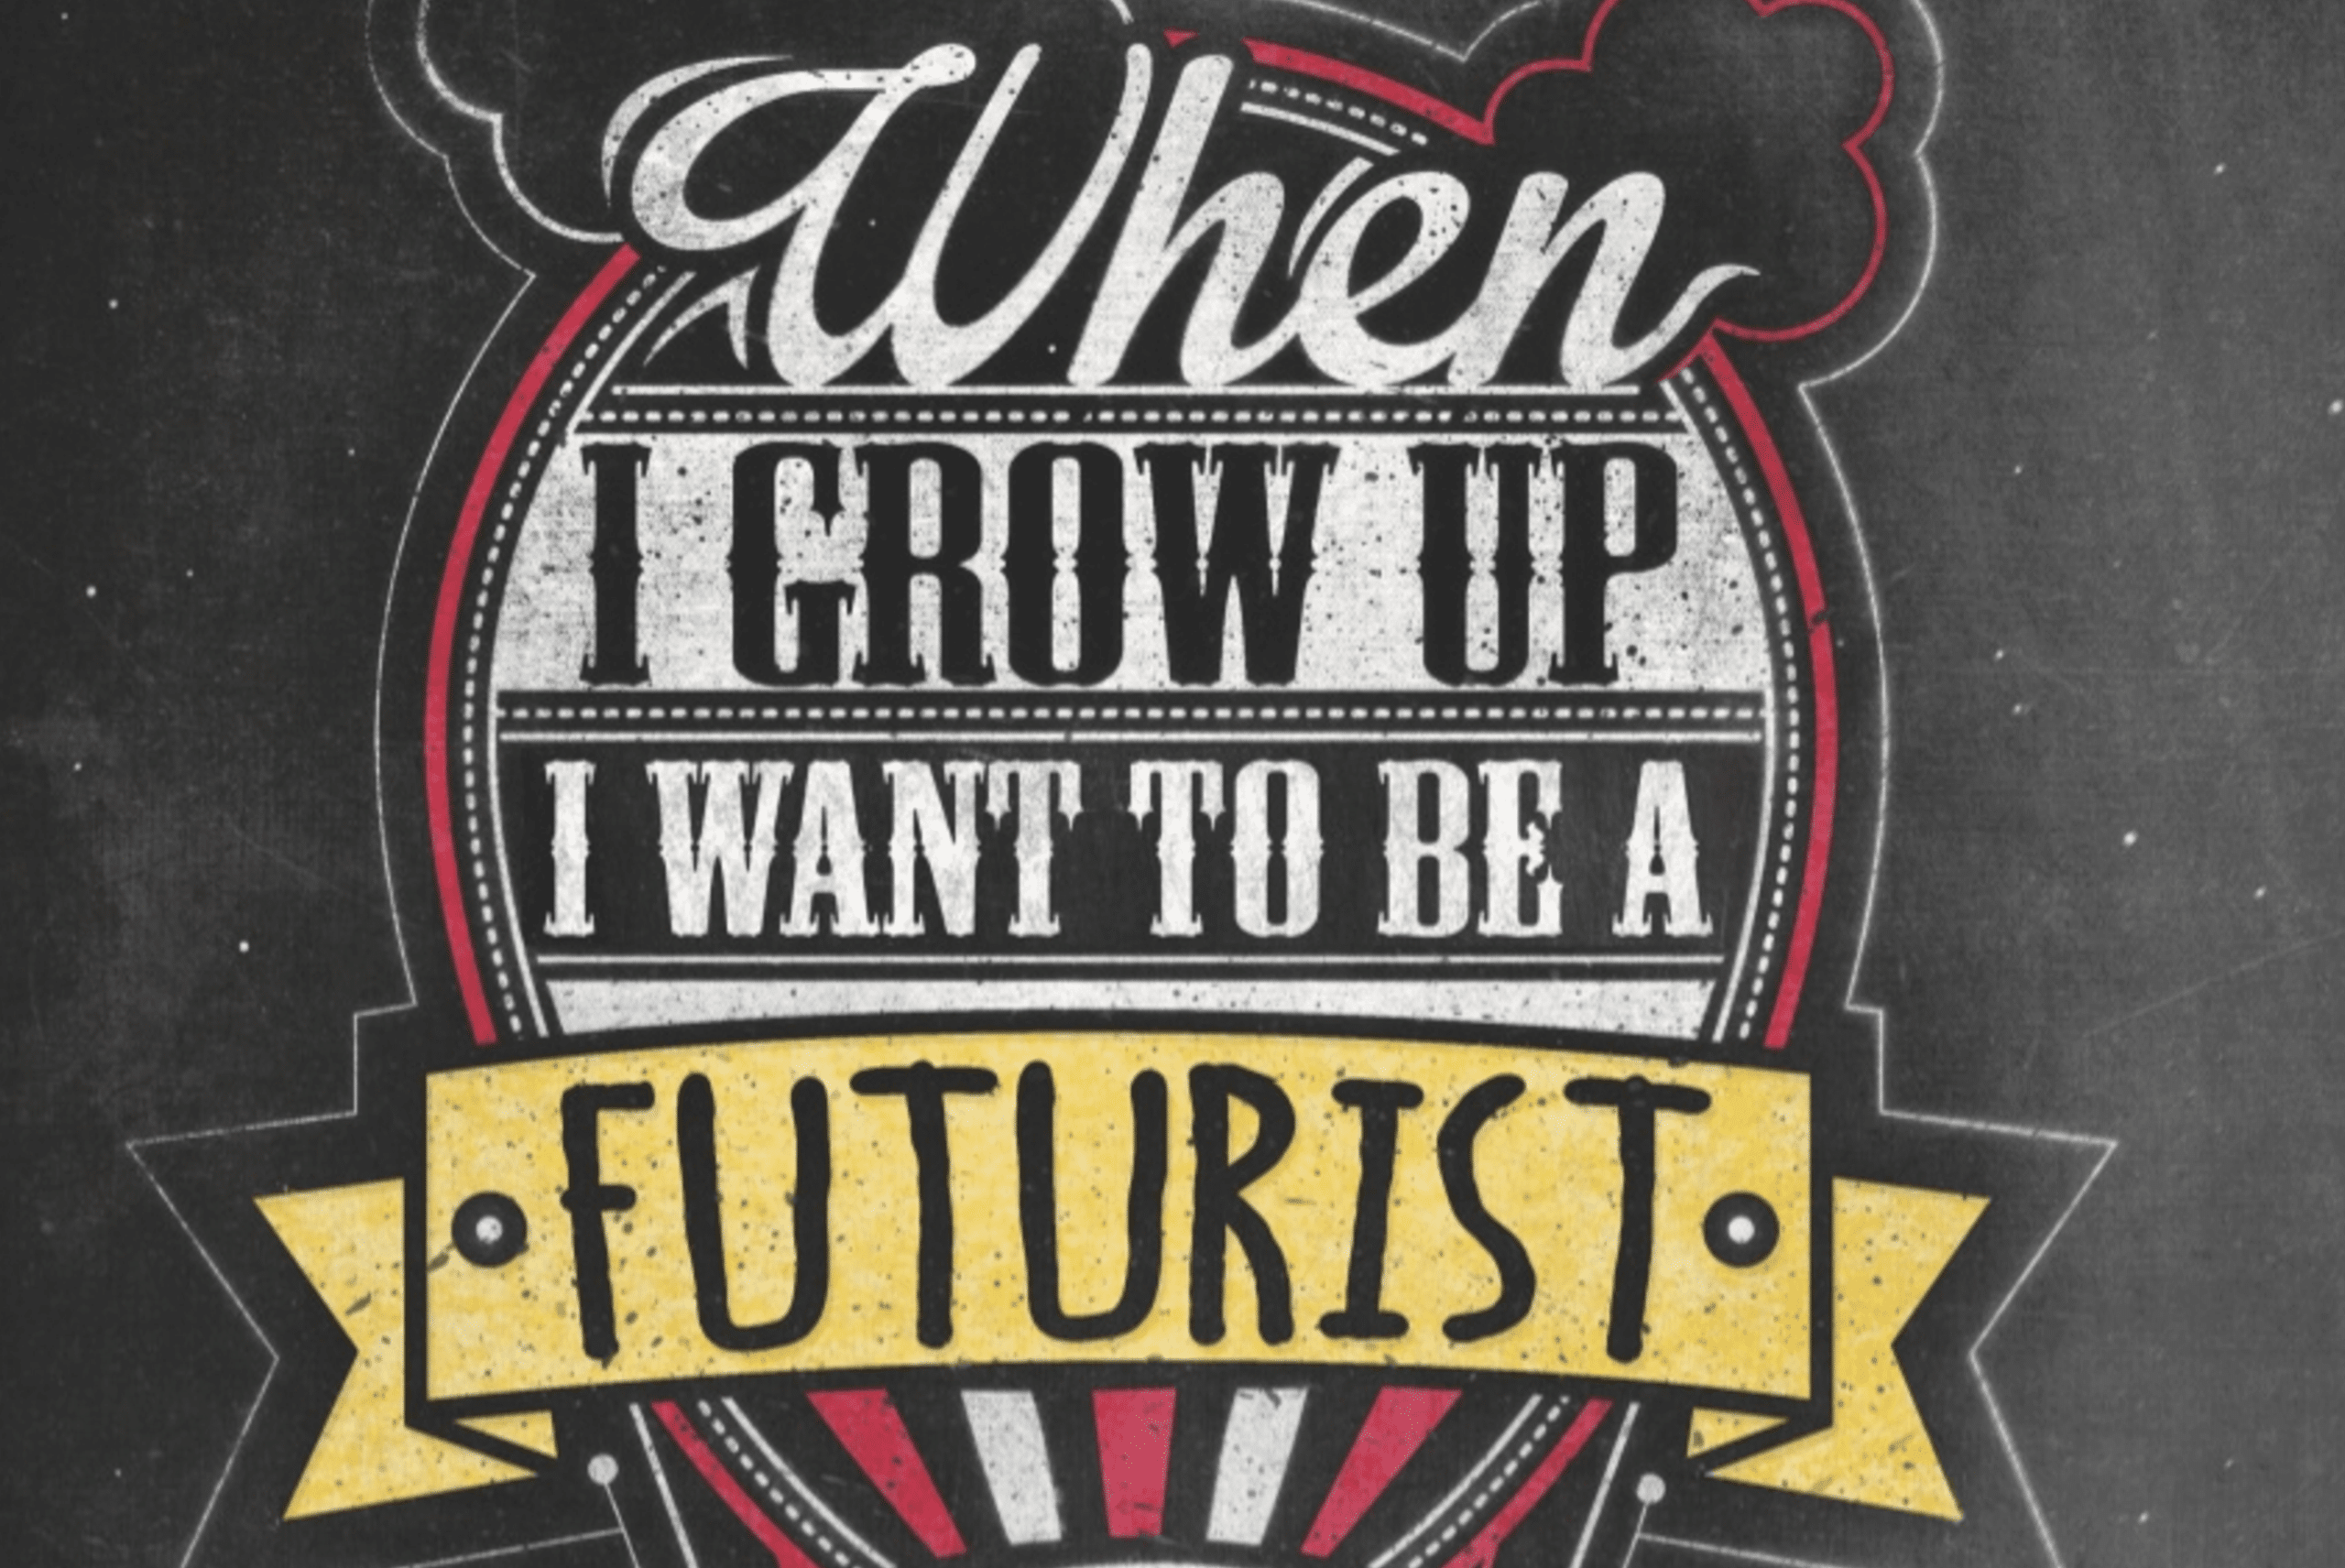 Free Download: When I Grow Up I want to be a Futurist